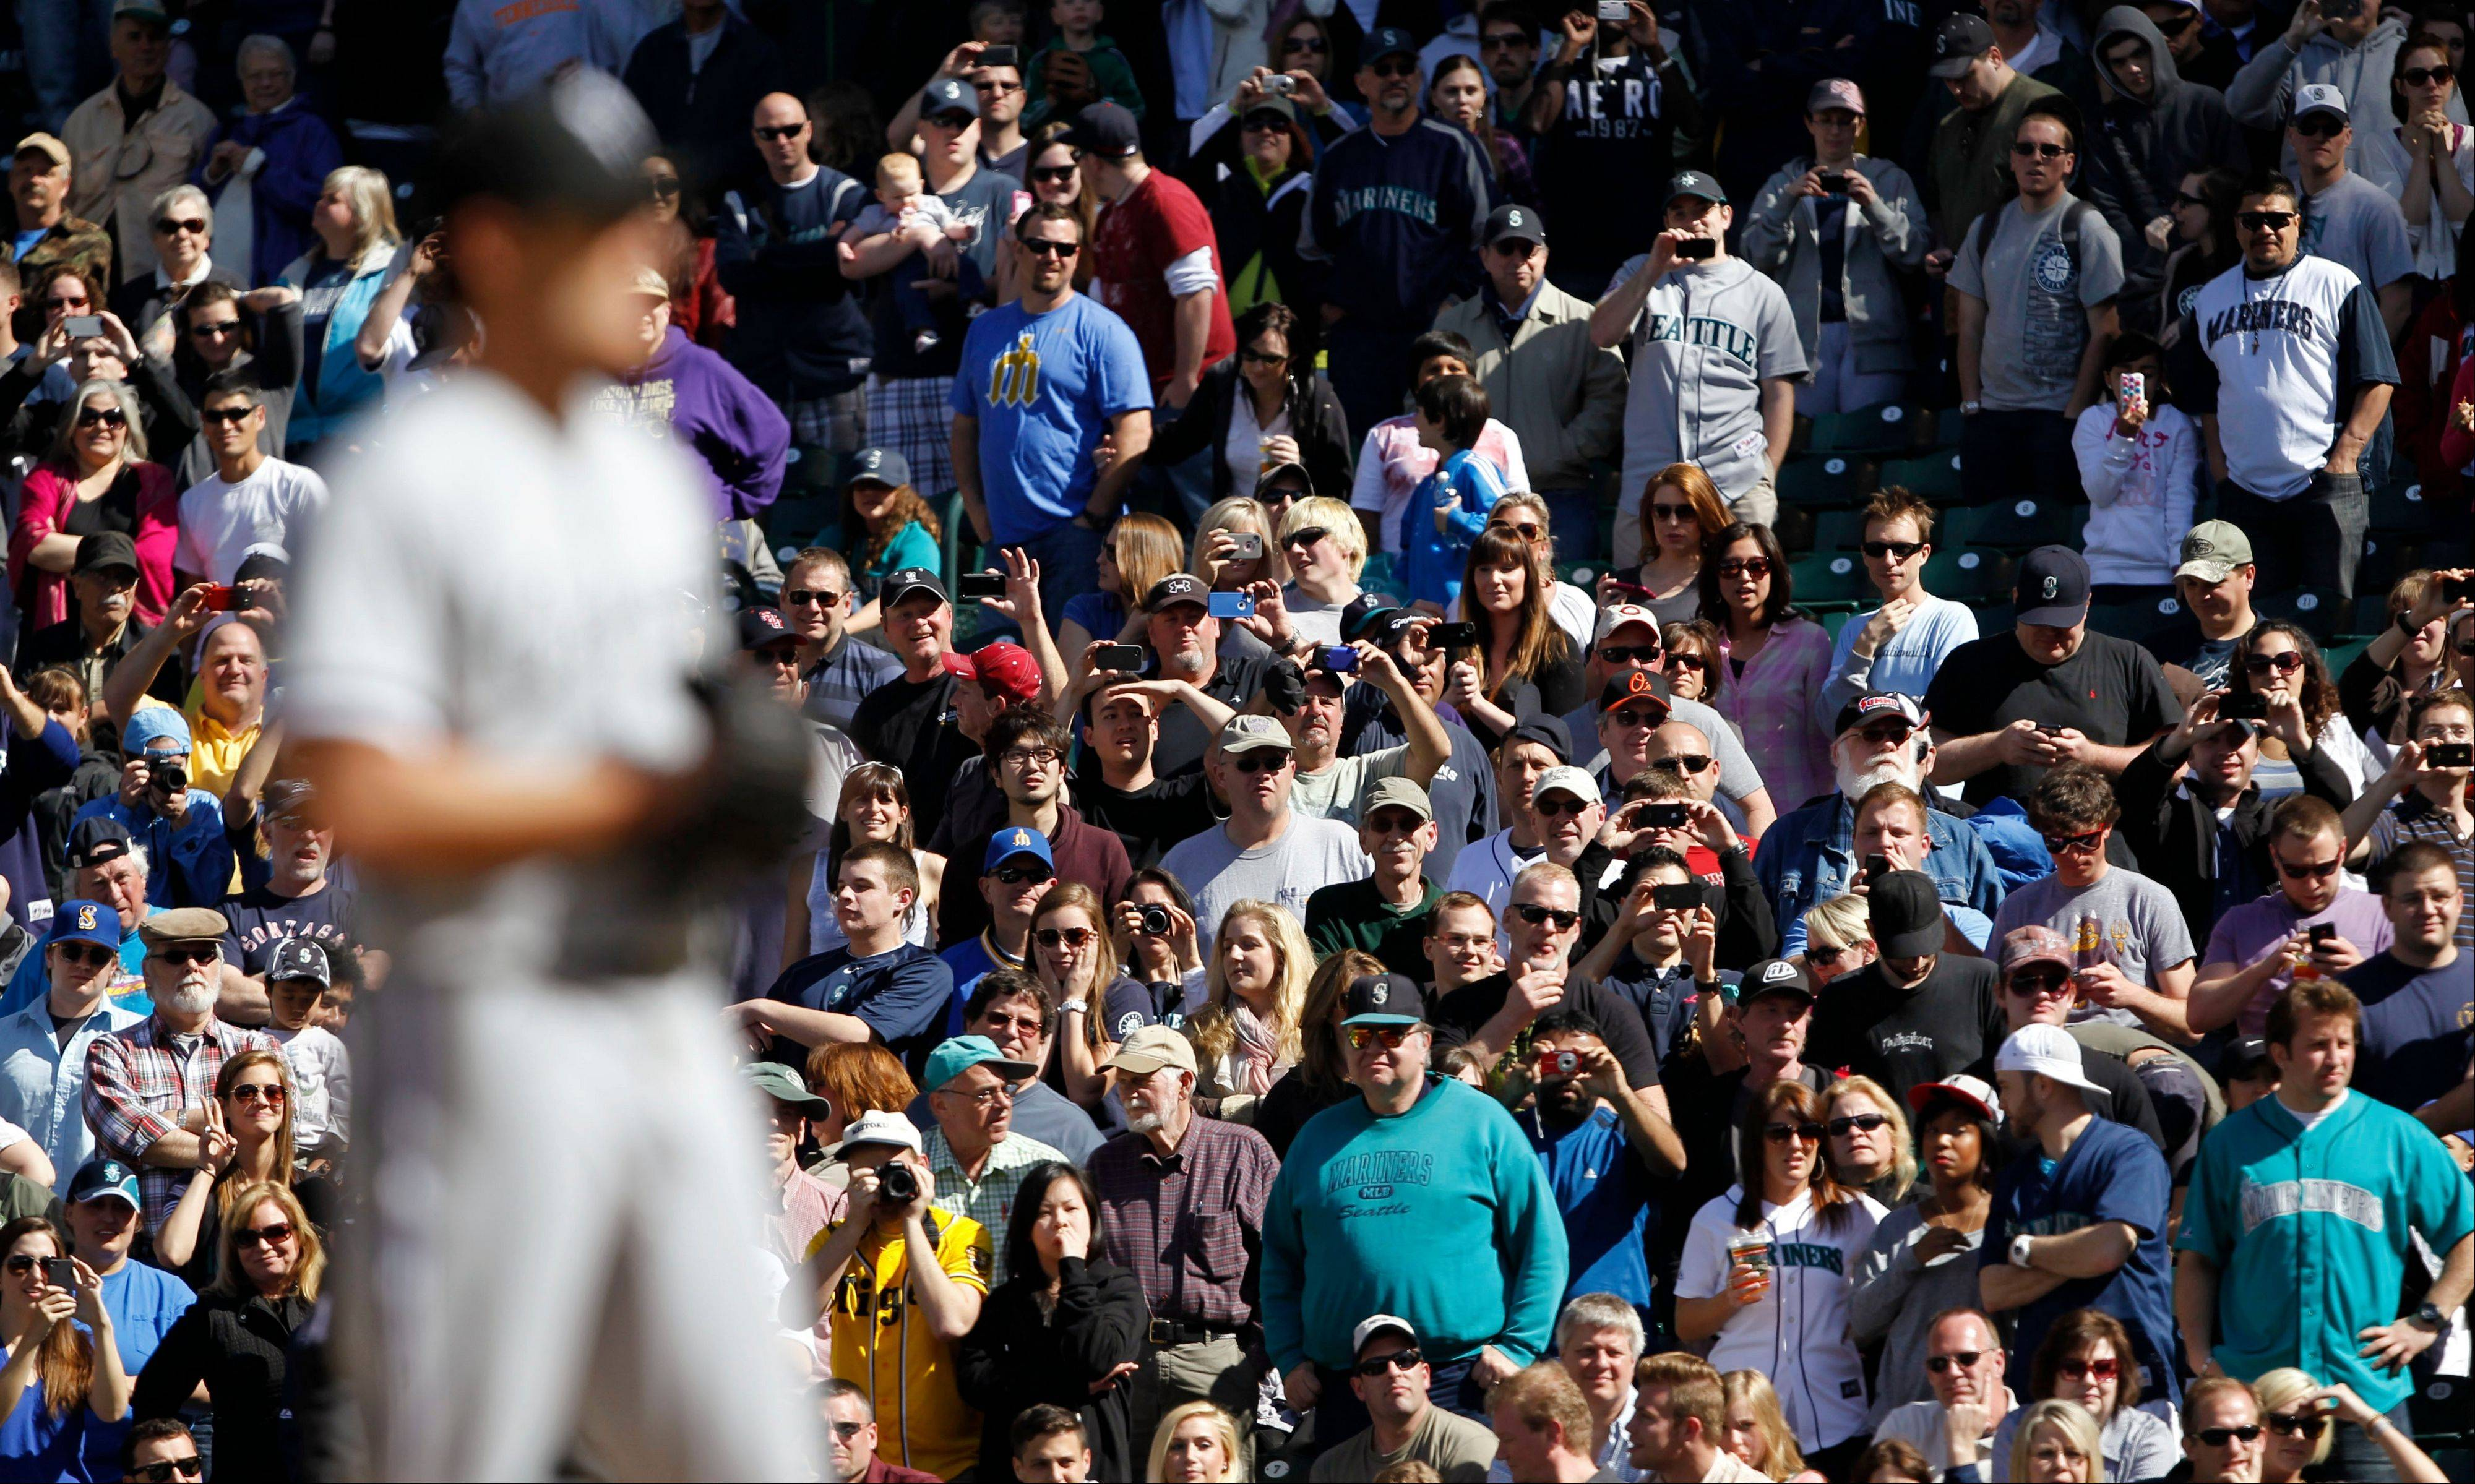 Fans stand as White Sox starting pitcher Phil Humber, foreground, readies to throw with two outs in the ninth inning.